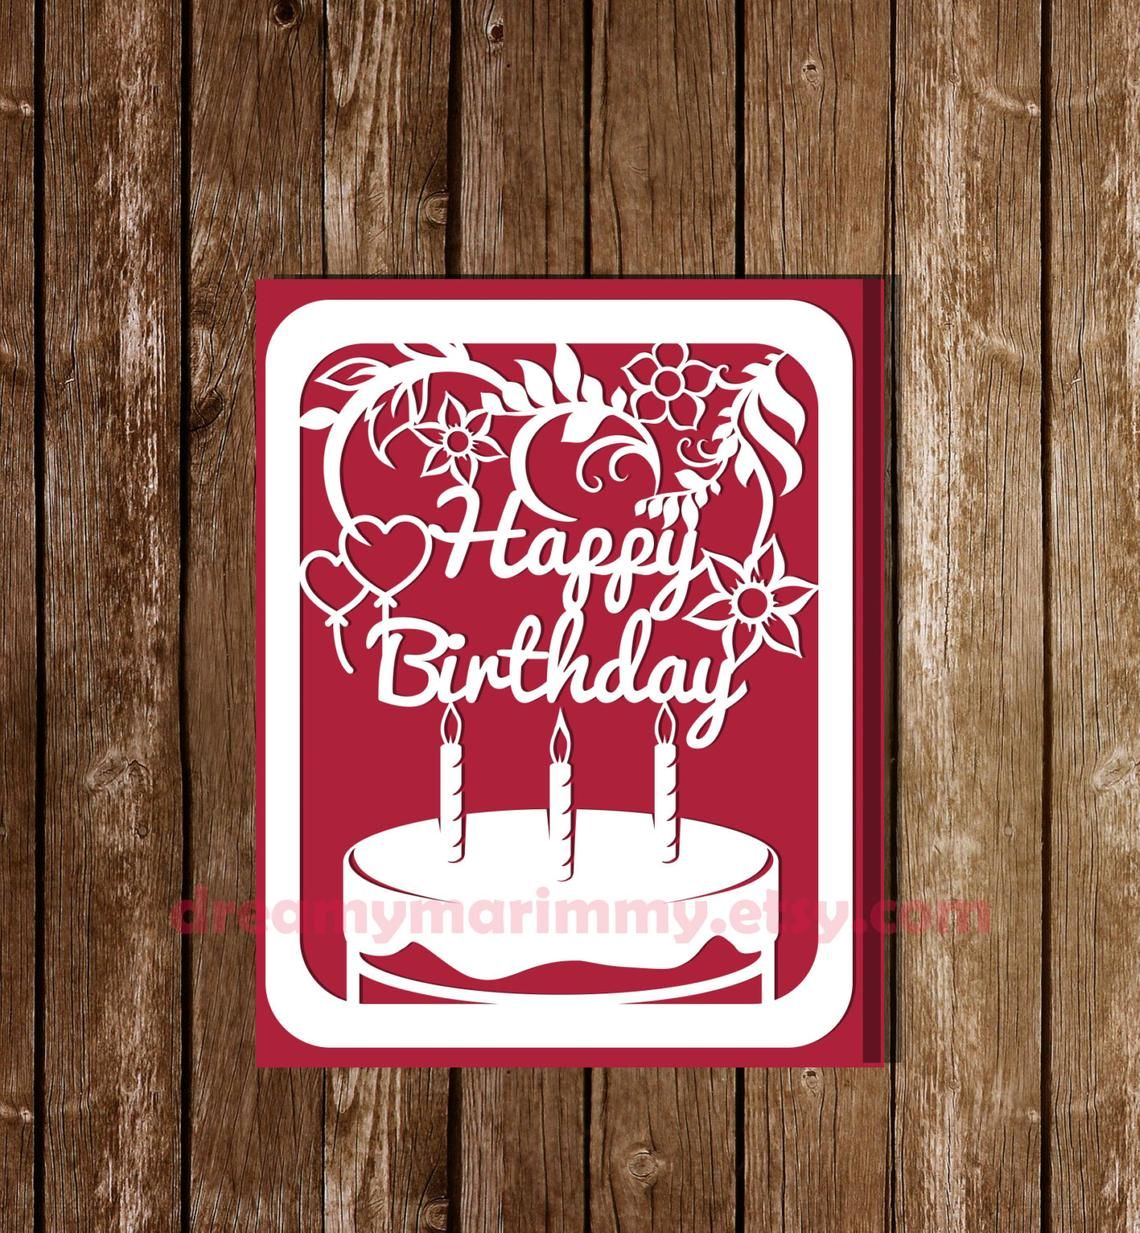 Pin on Birthday card template